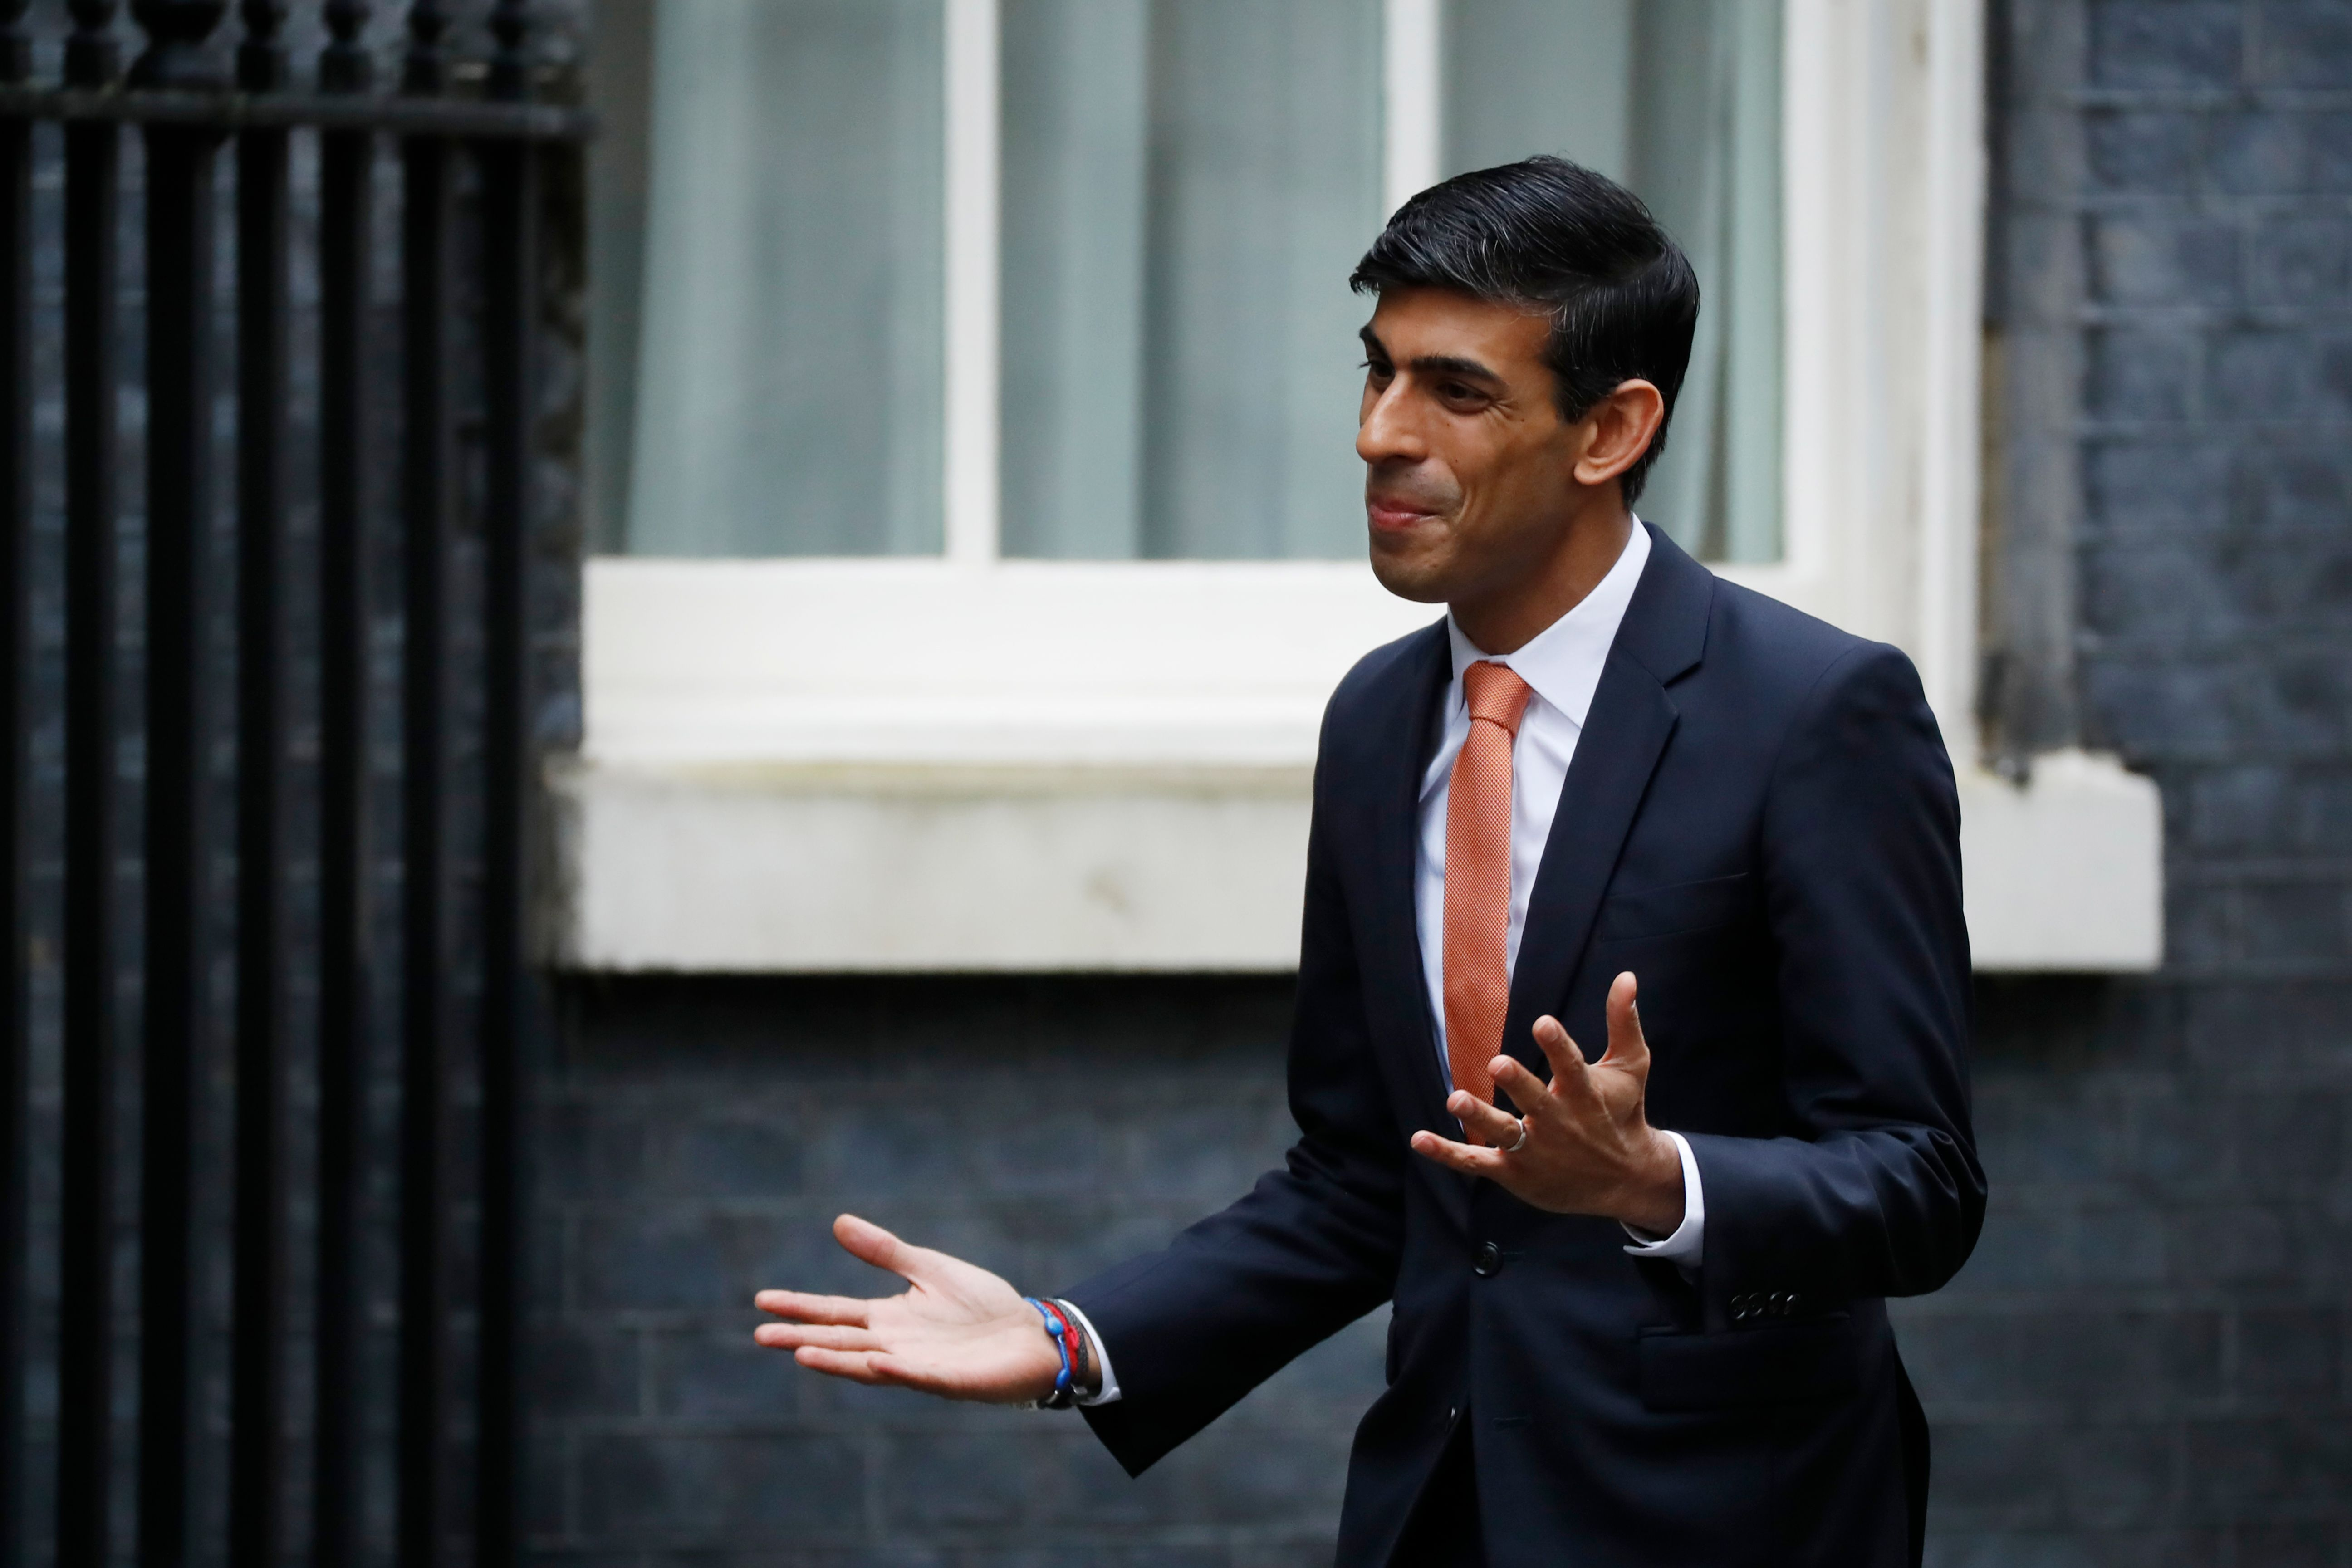 Britain's Chief Secretary to the Treasury Rishi Sunak arrives at 10 Downing Street in central London on February 13, 2020 as the prime minister reshuffles his team. - Britain's prime minister revamped his top team on February 13 in his first cabinet reshuffle since taking Britain out of the European Union. (Photo by Tolga AKMEN / AFP) (Photo by TOLGA AKMEN/AFP via Getty Images)